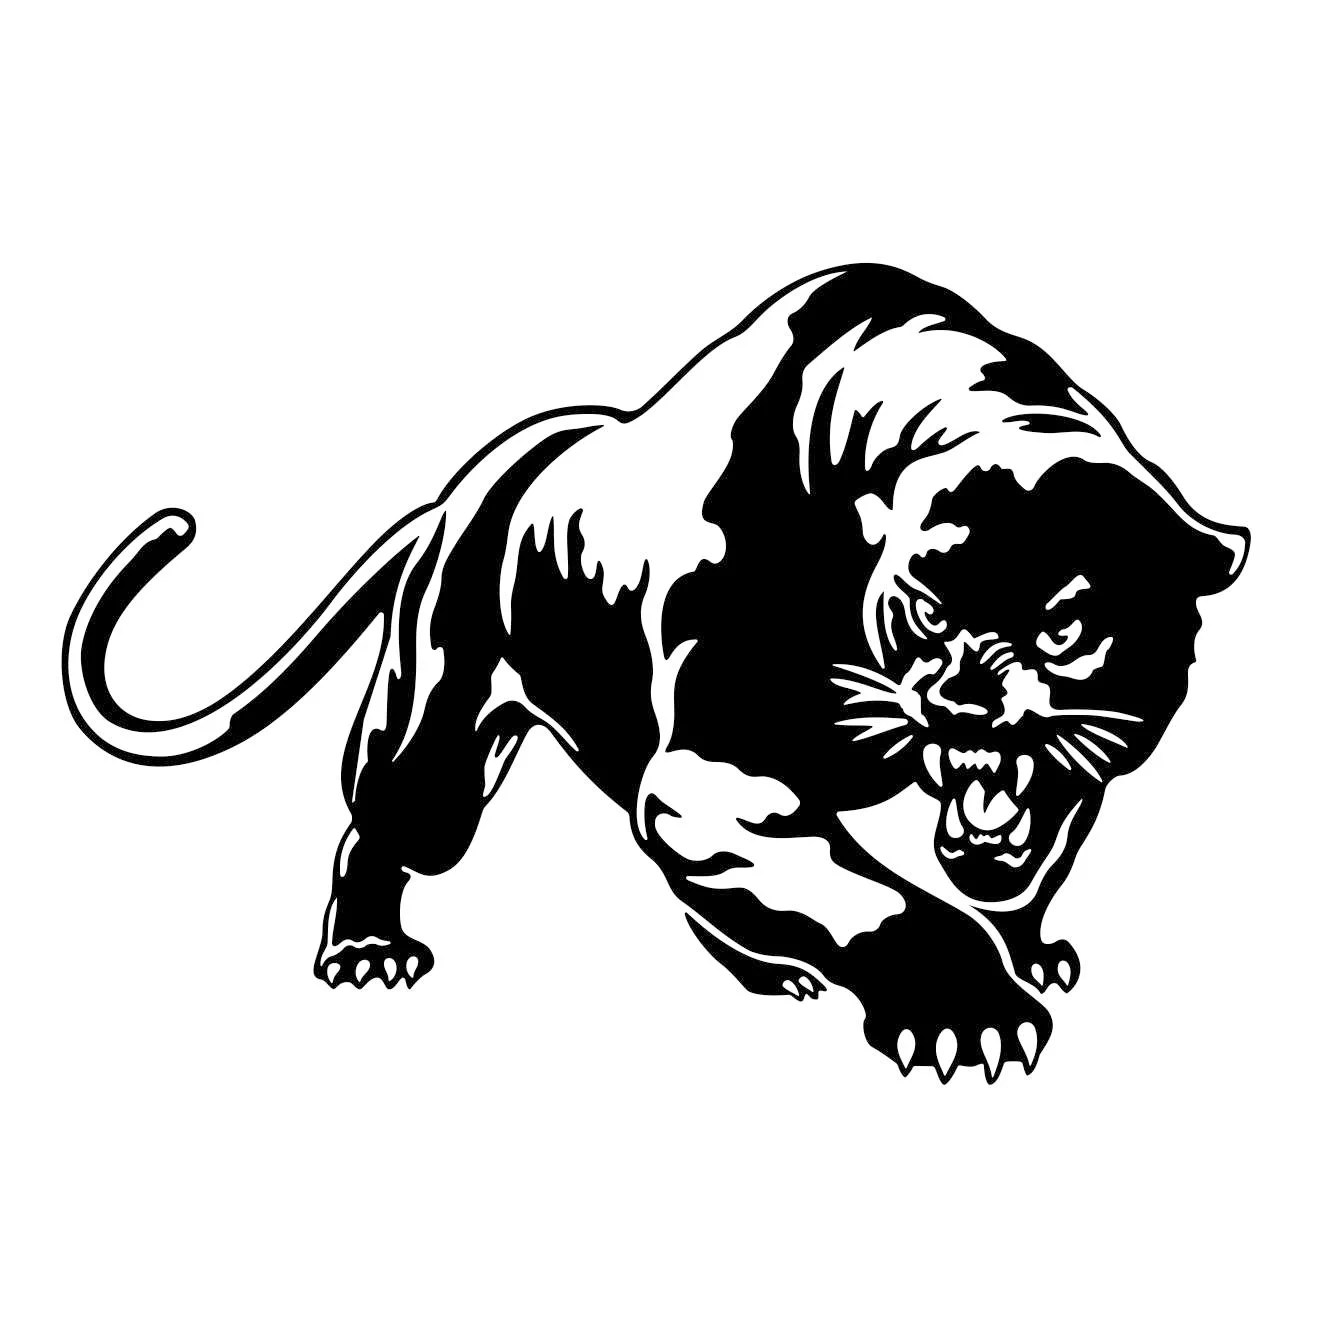 Puma Cougar Panther Graphics Svg Dxf Eps Cdr Ai